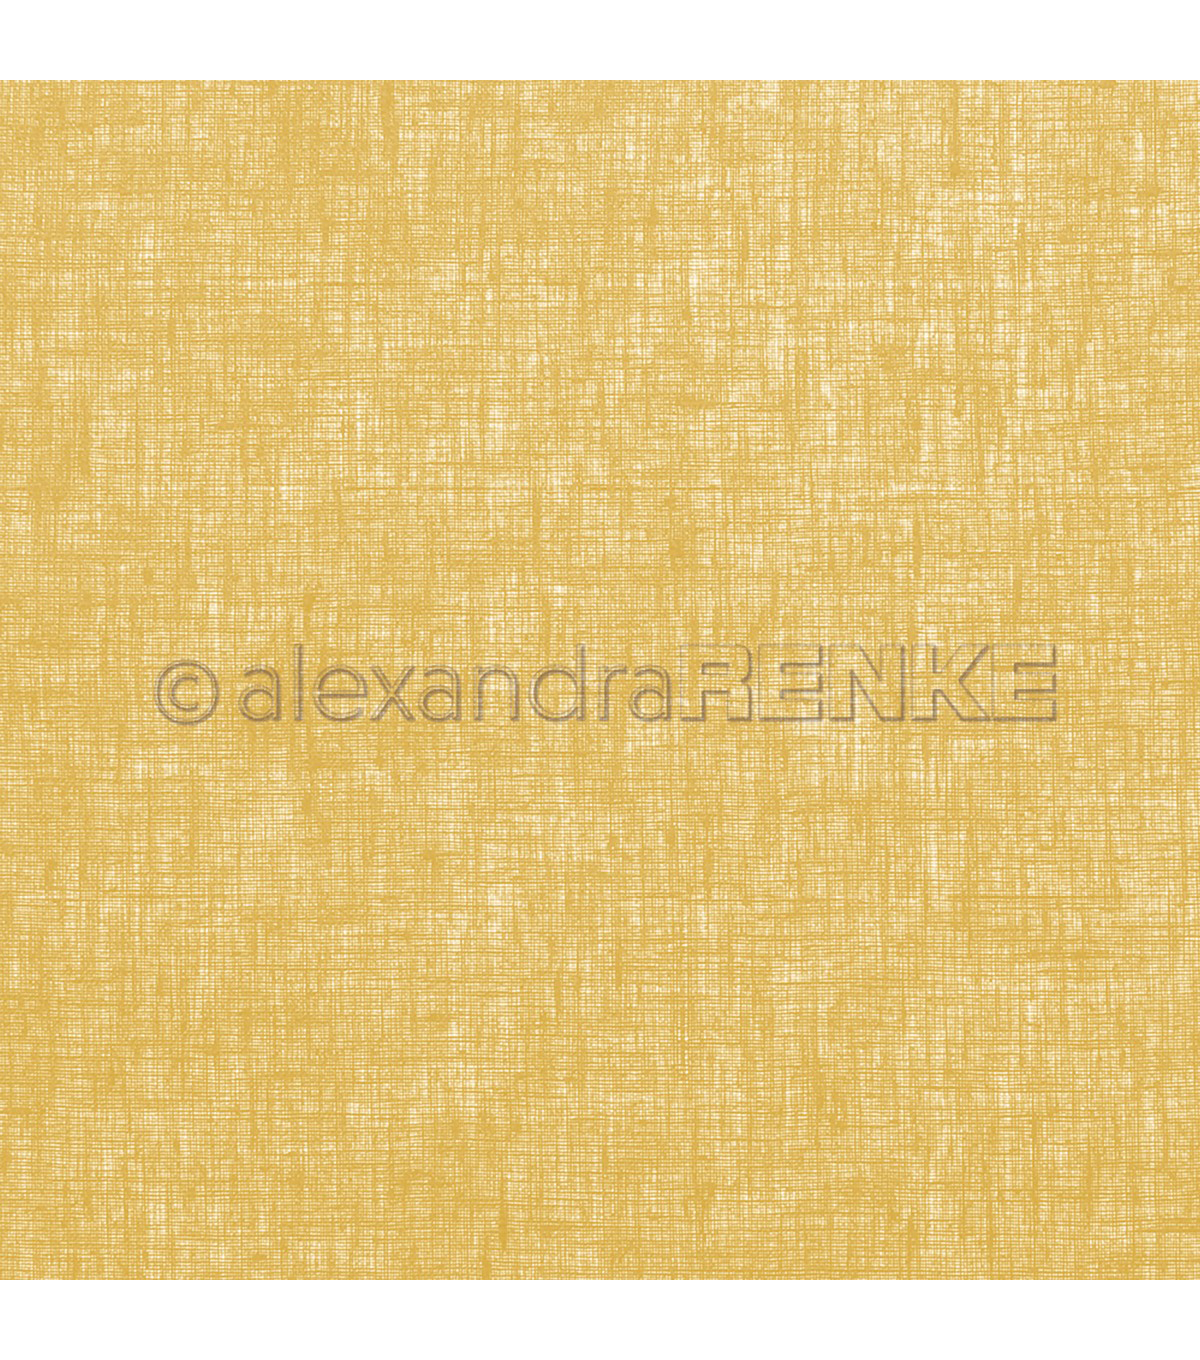 Alexandra Renke Mimi\u0027s Single-sided Cardstock-Linen Mustard Yellow